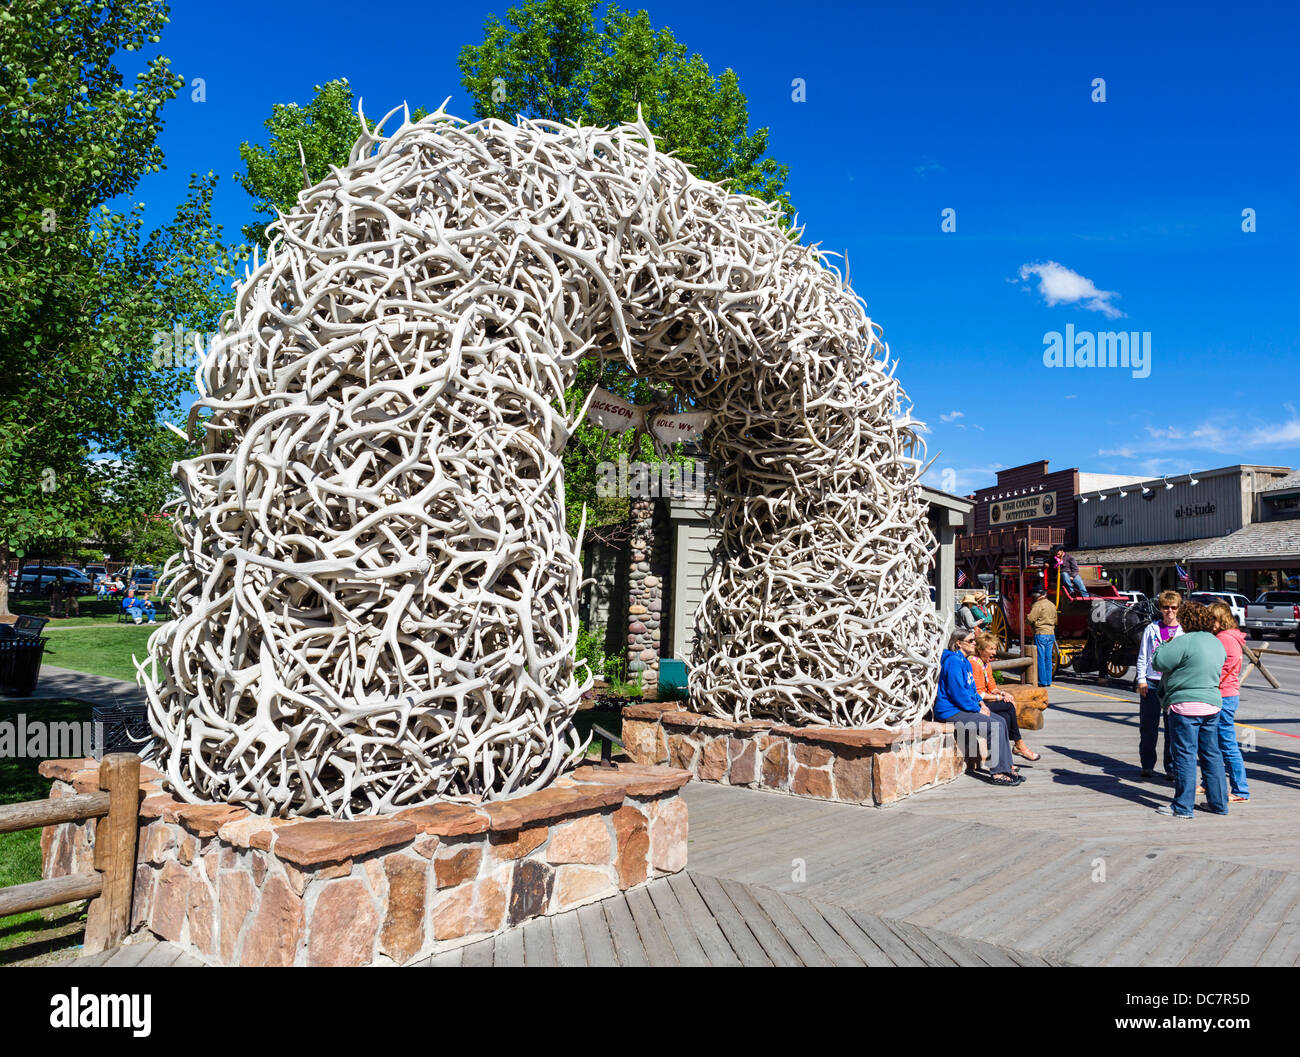 Arch of shed Elk antlers in the town square, Jackson, Wyoming, USA - Stock Image